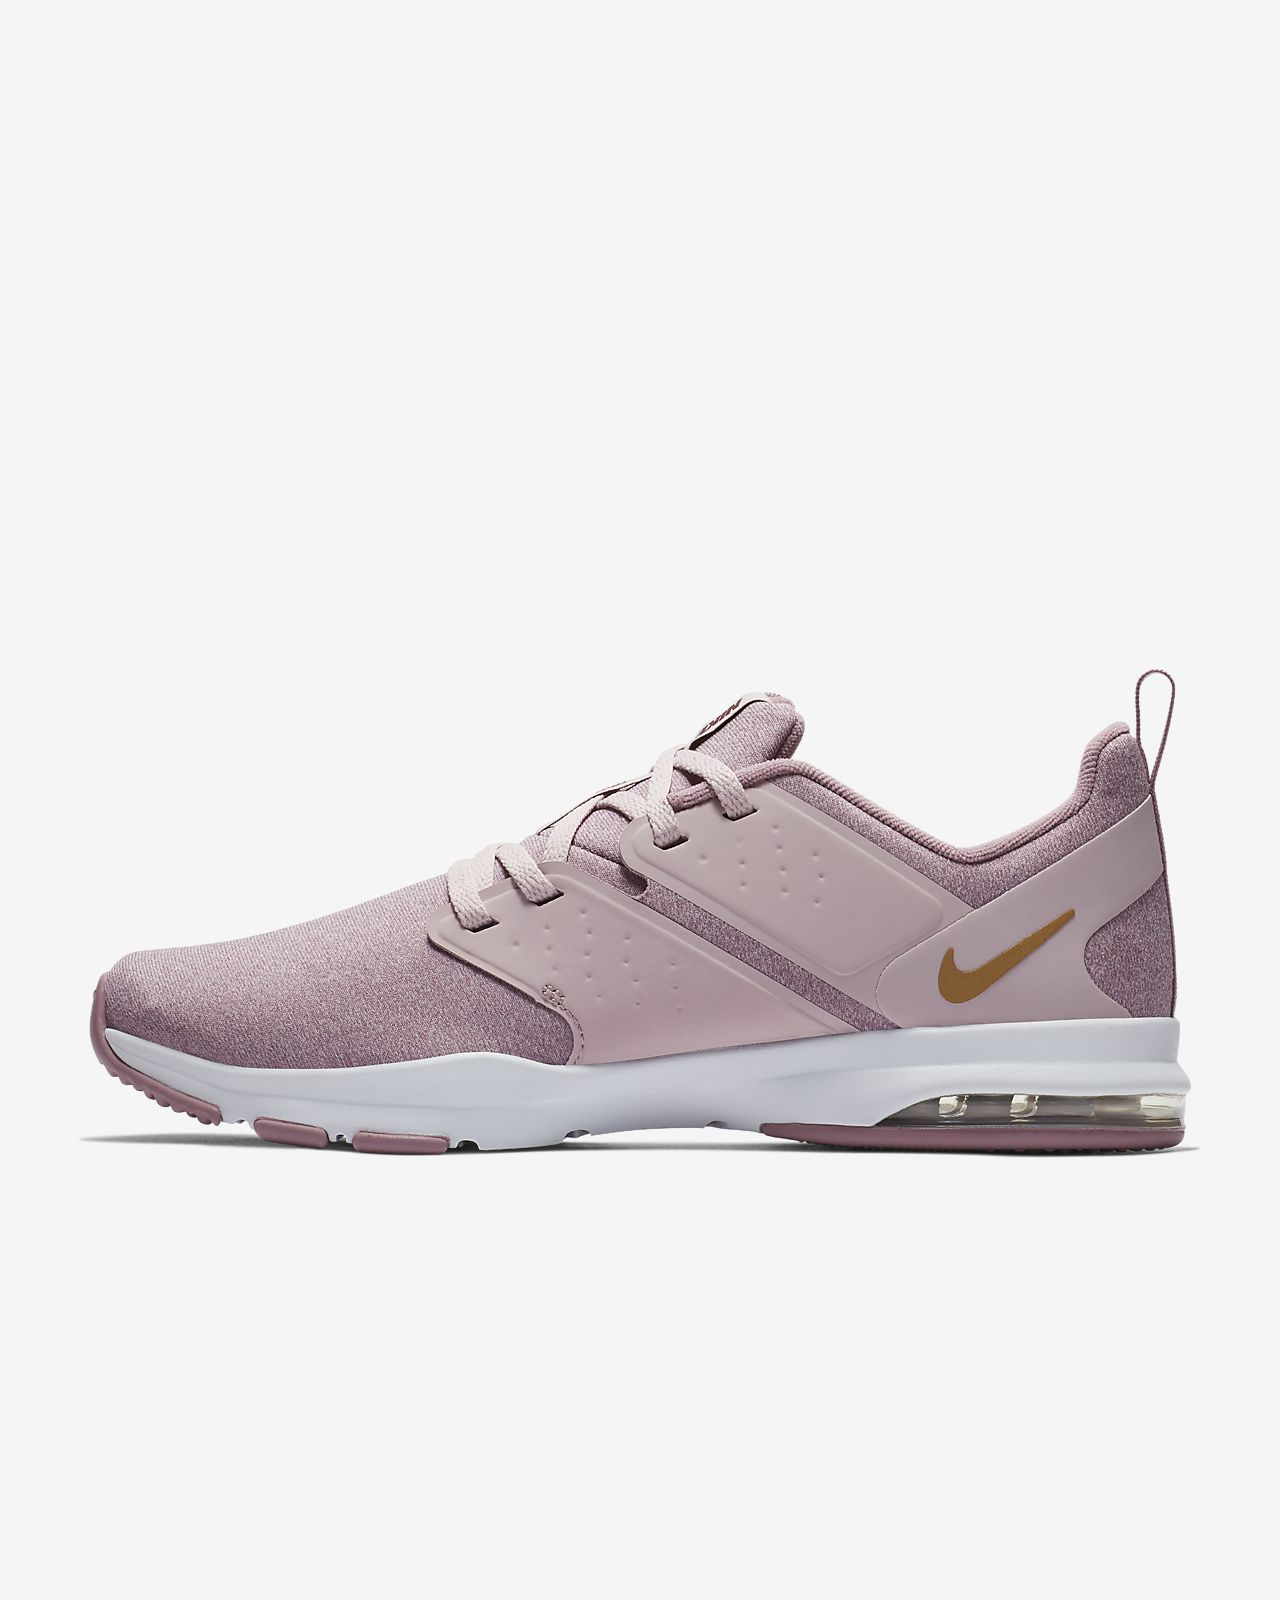 the best attitude 9ae72 0befd ... Chaussure de training Nike Air Bella TR AMP pour Femme